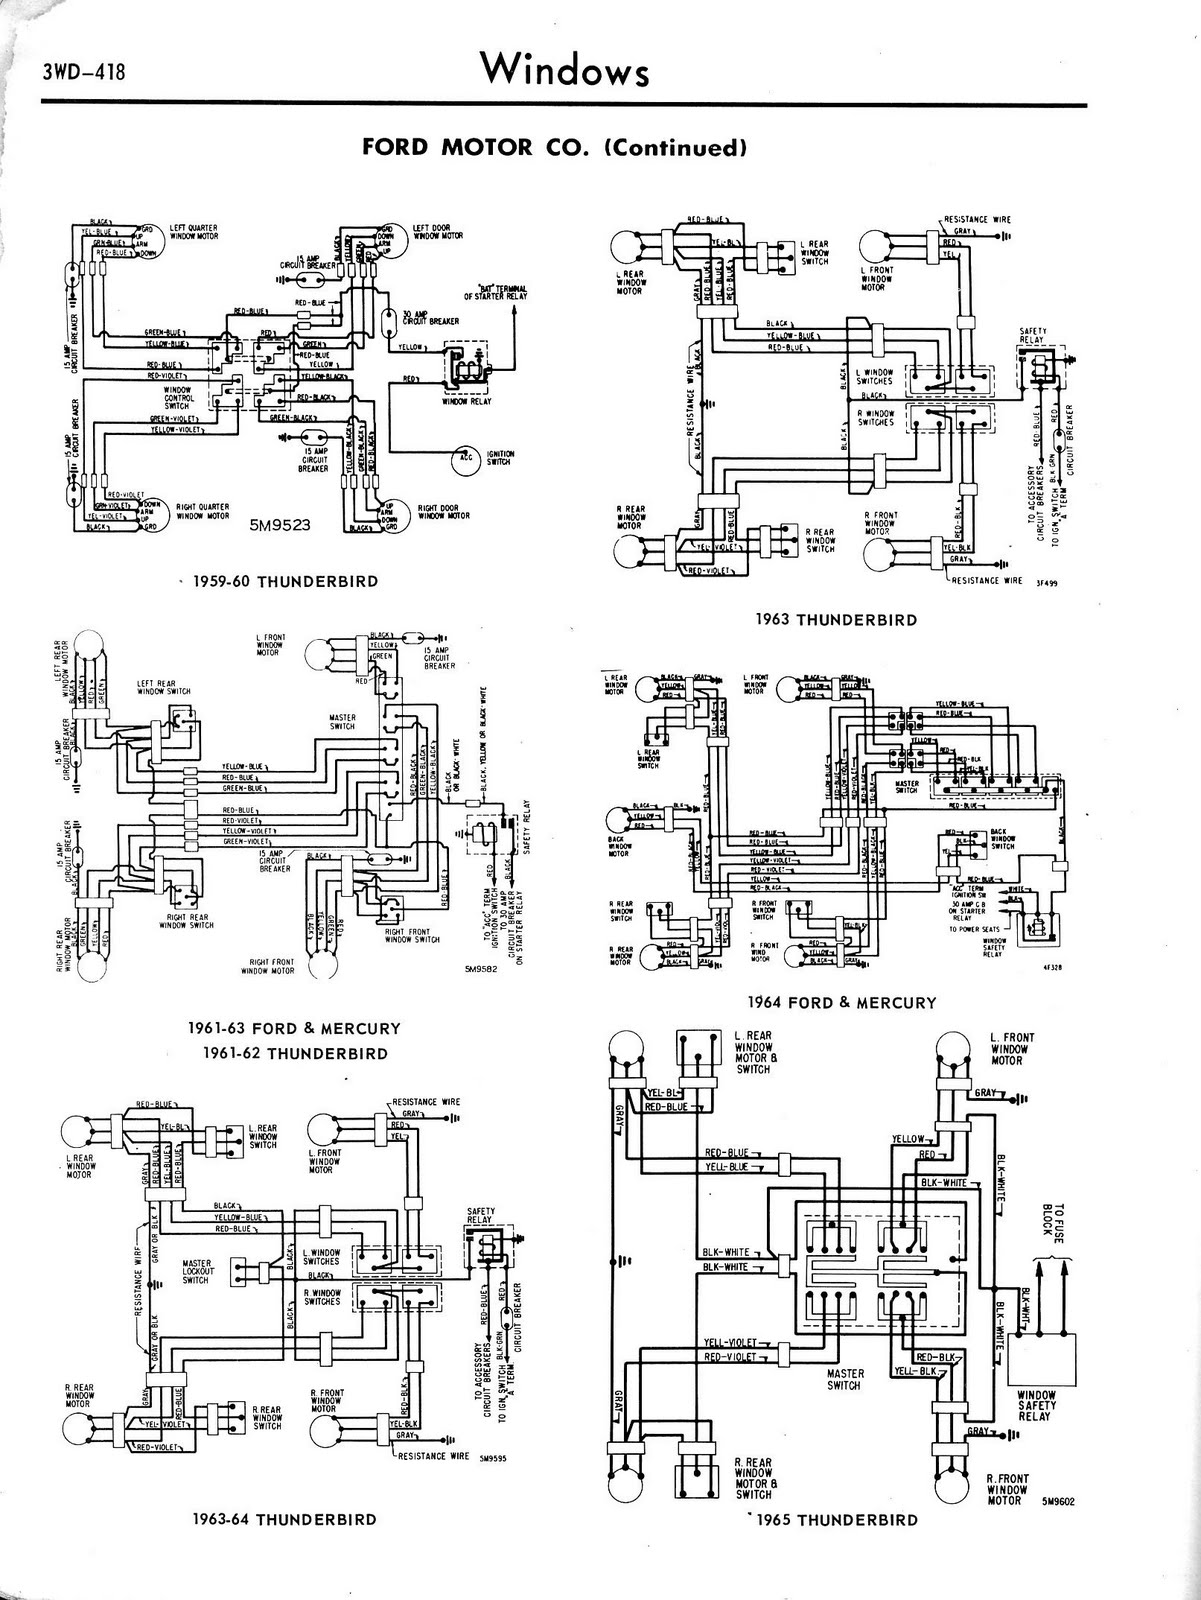 1965+Ford+Thunderbird+Window+Controls+Diagram wiring diagram for 1972 ford f100 the wiring diagram 1965 f100 wiring harness at creativeand.co